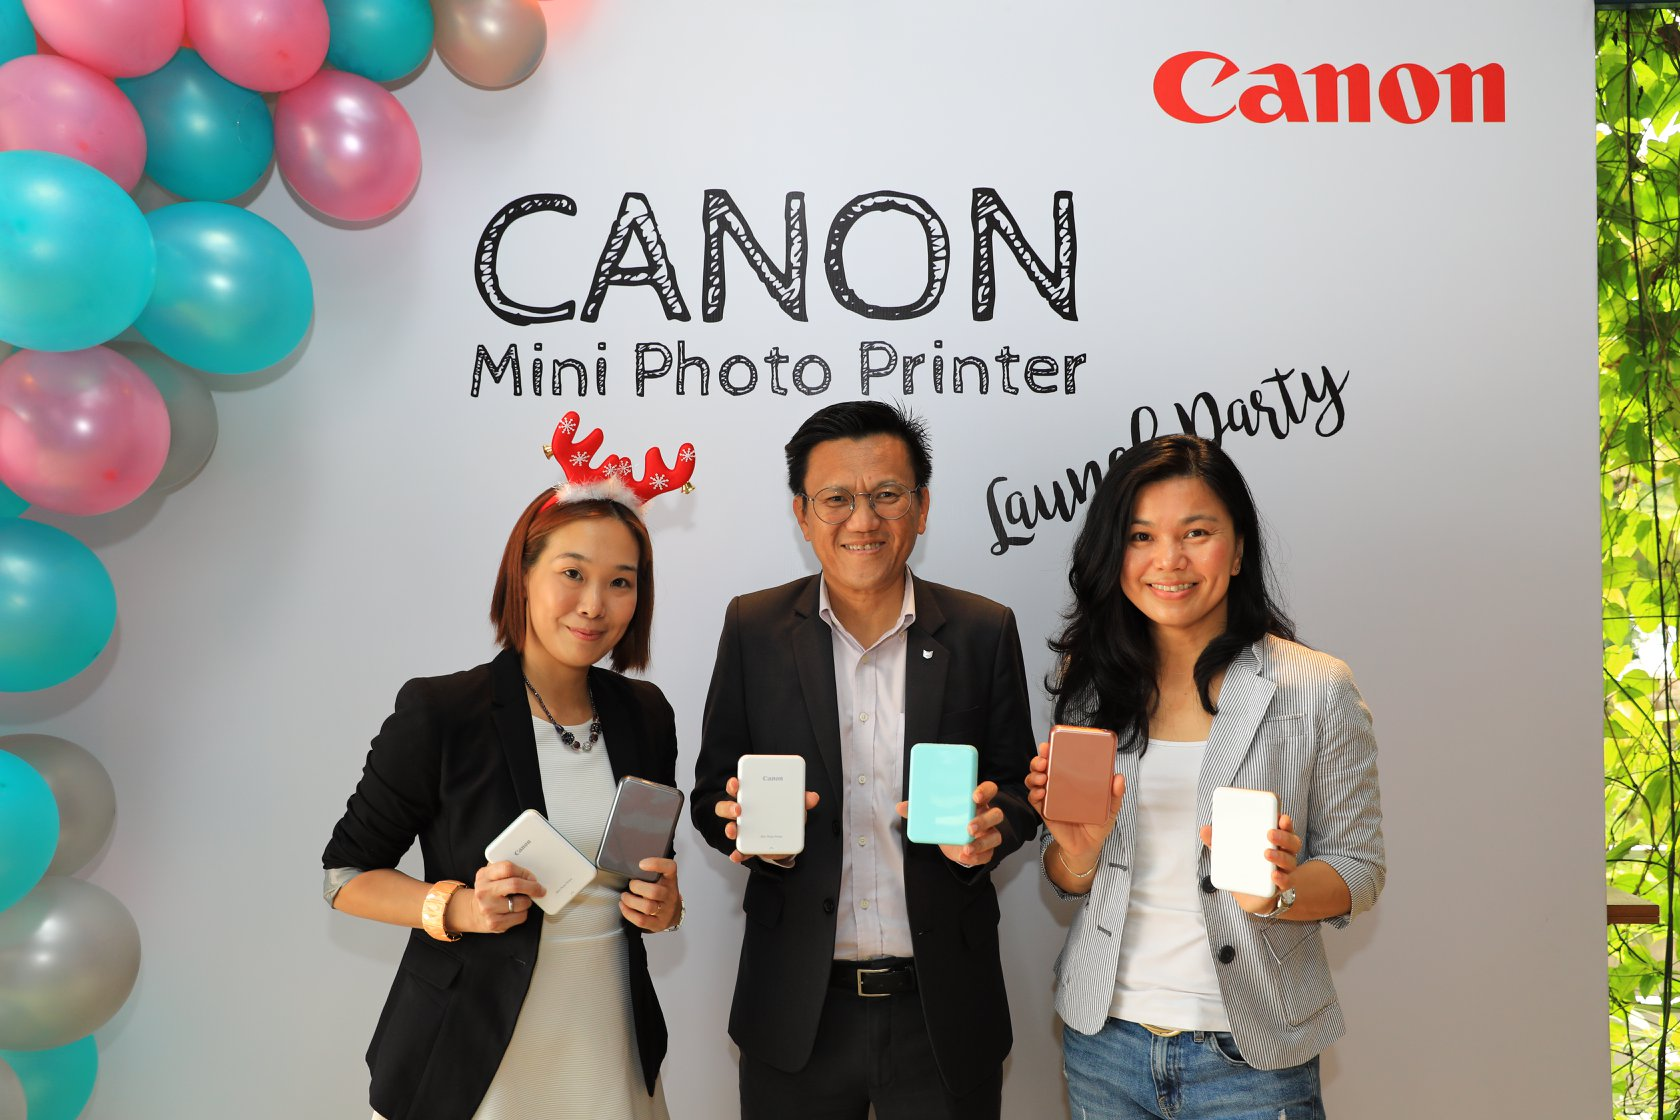 The New Canon Mini Photo Printer Packs a Massive Punch for Creative Fun On The Go